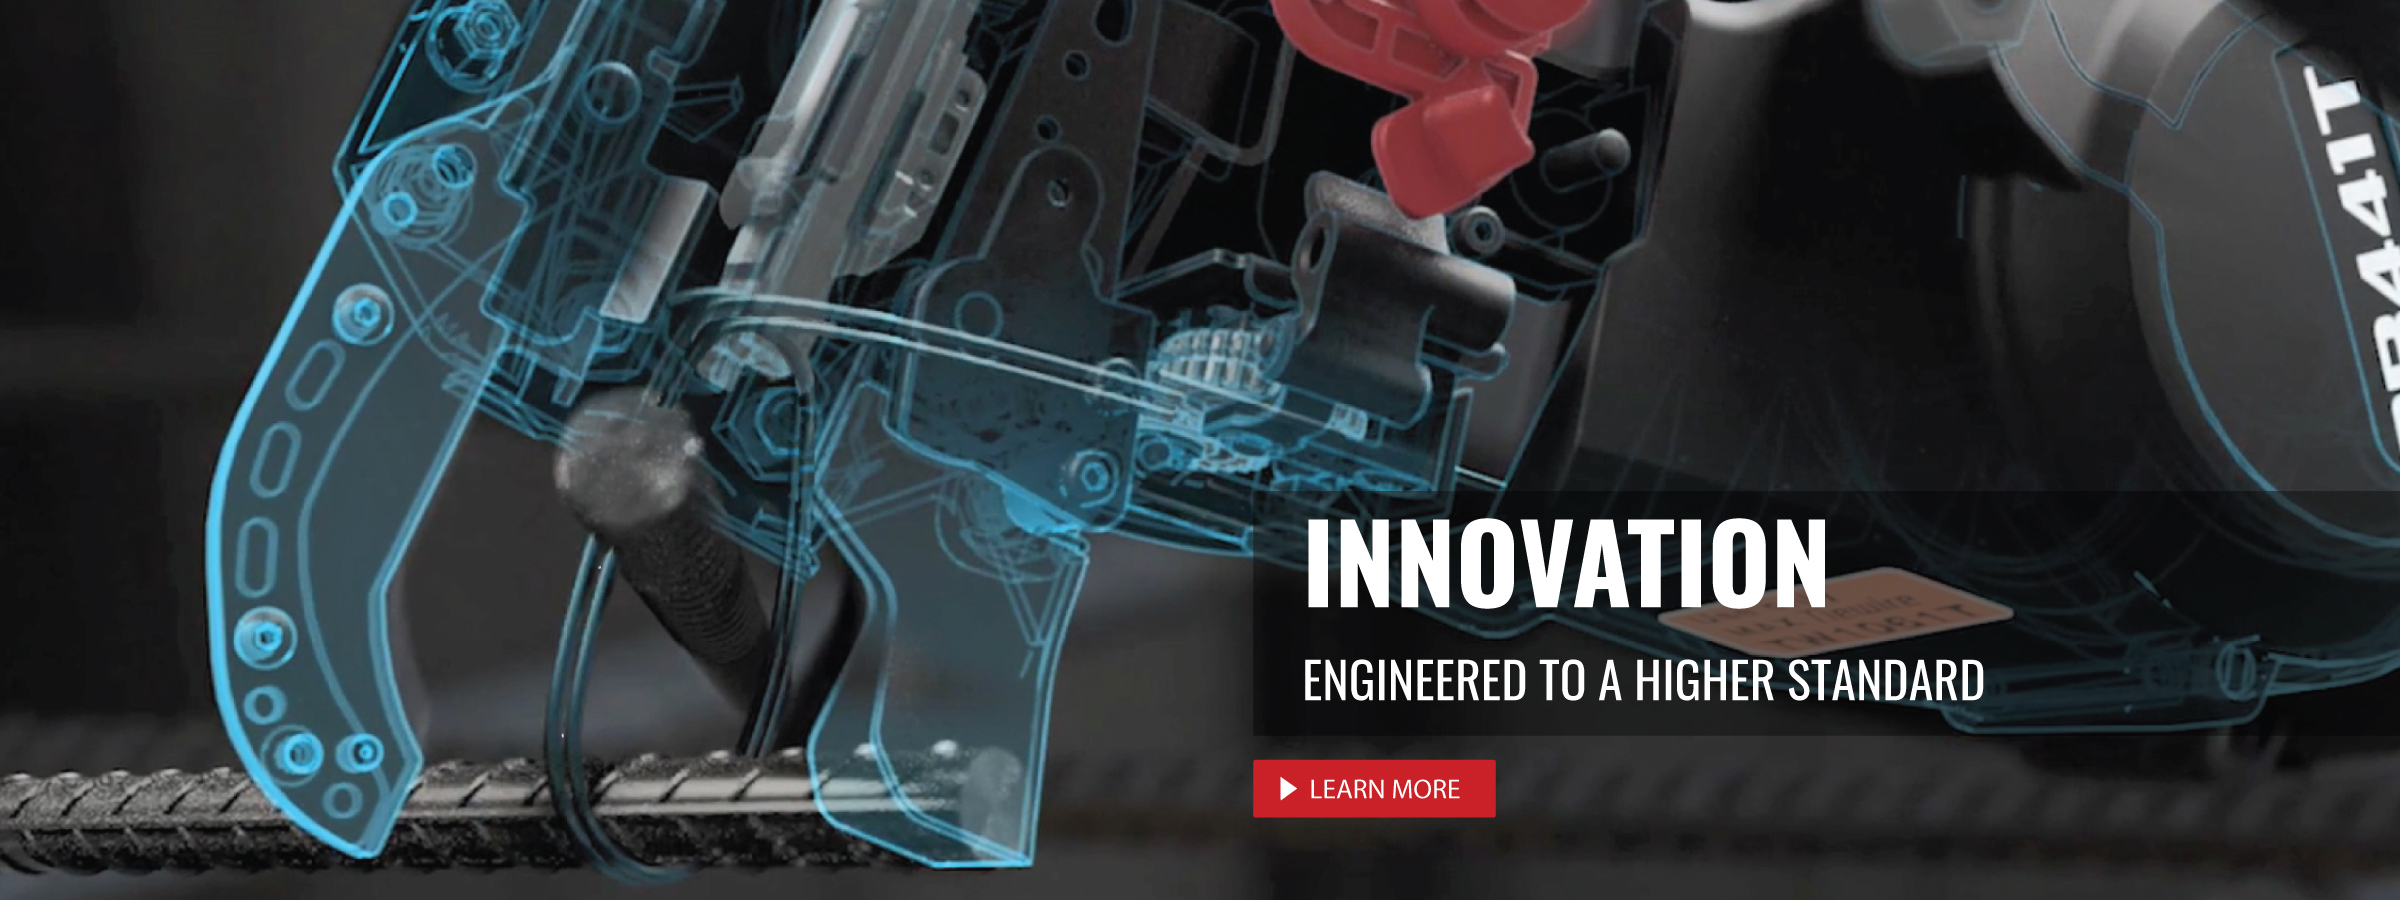 Innovation Engineered to a higher standard